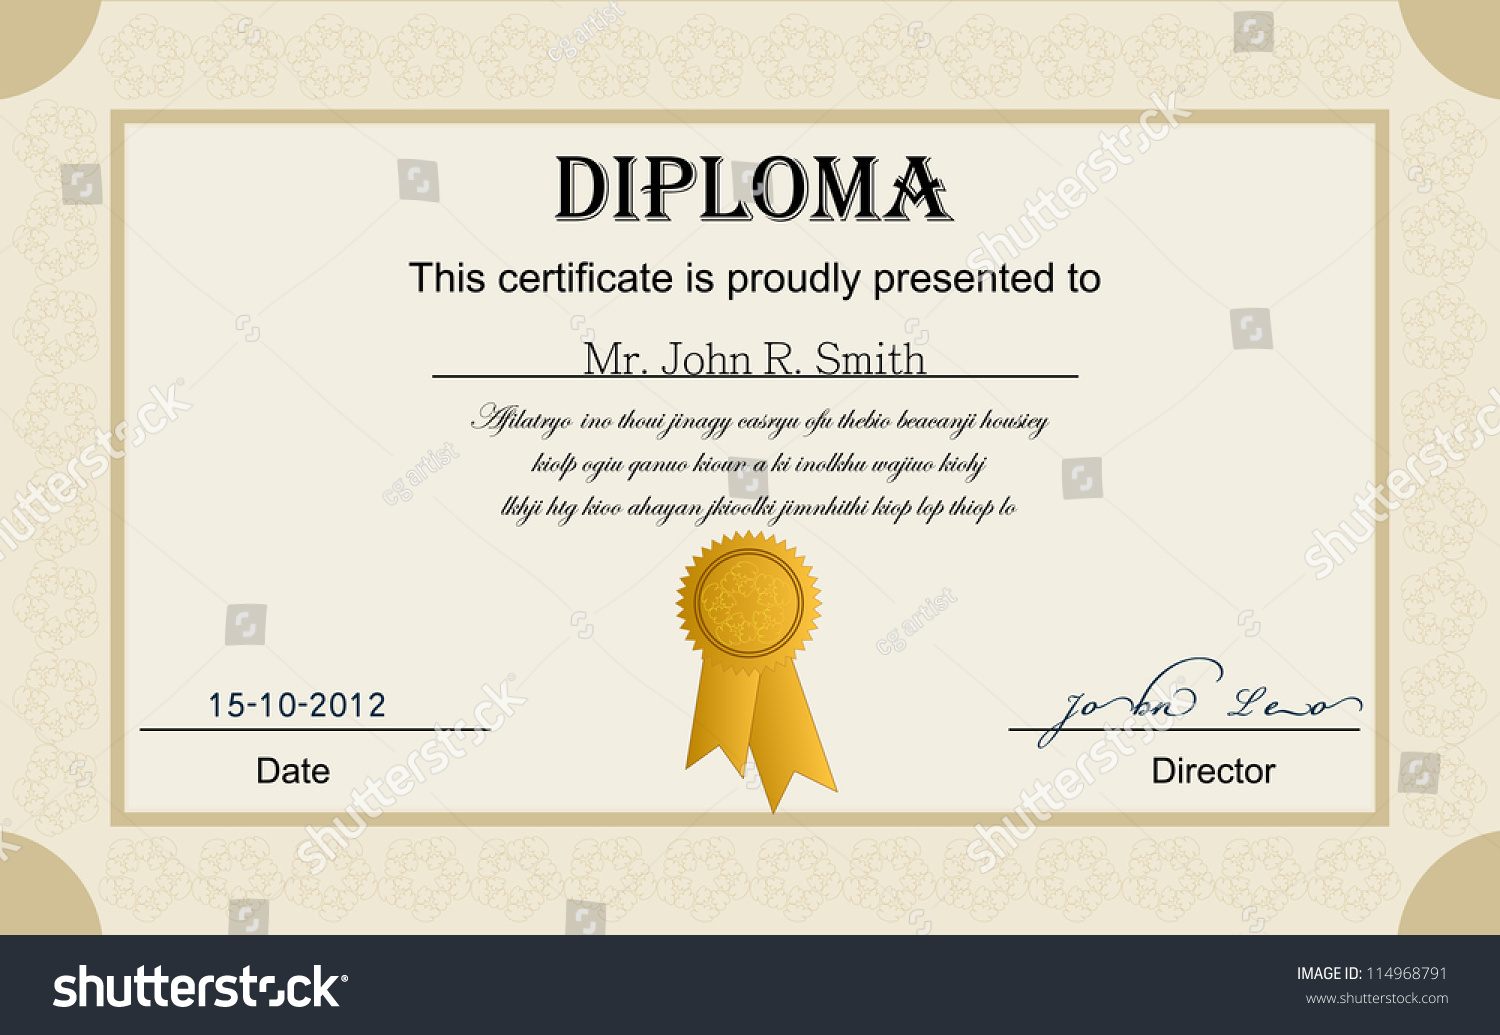 Appealing award certificate vector images